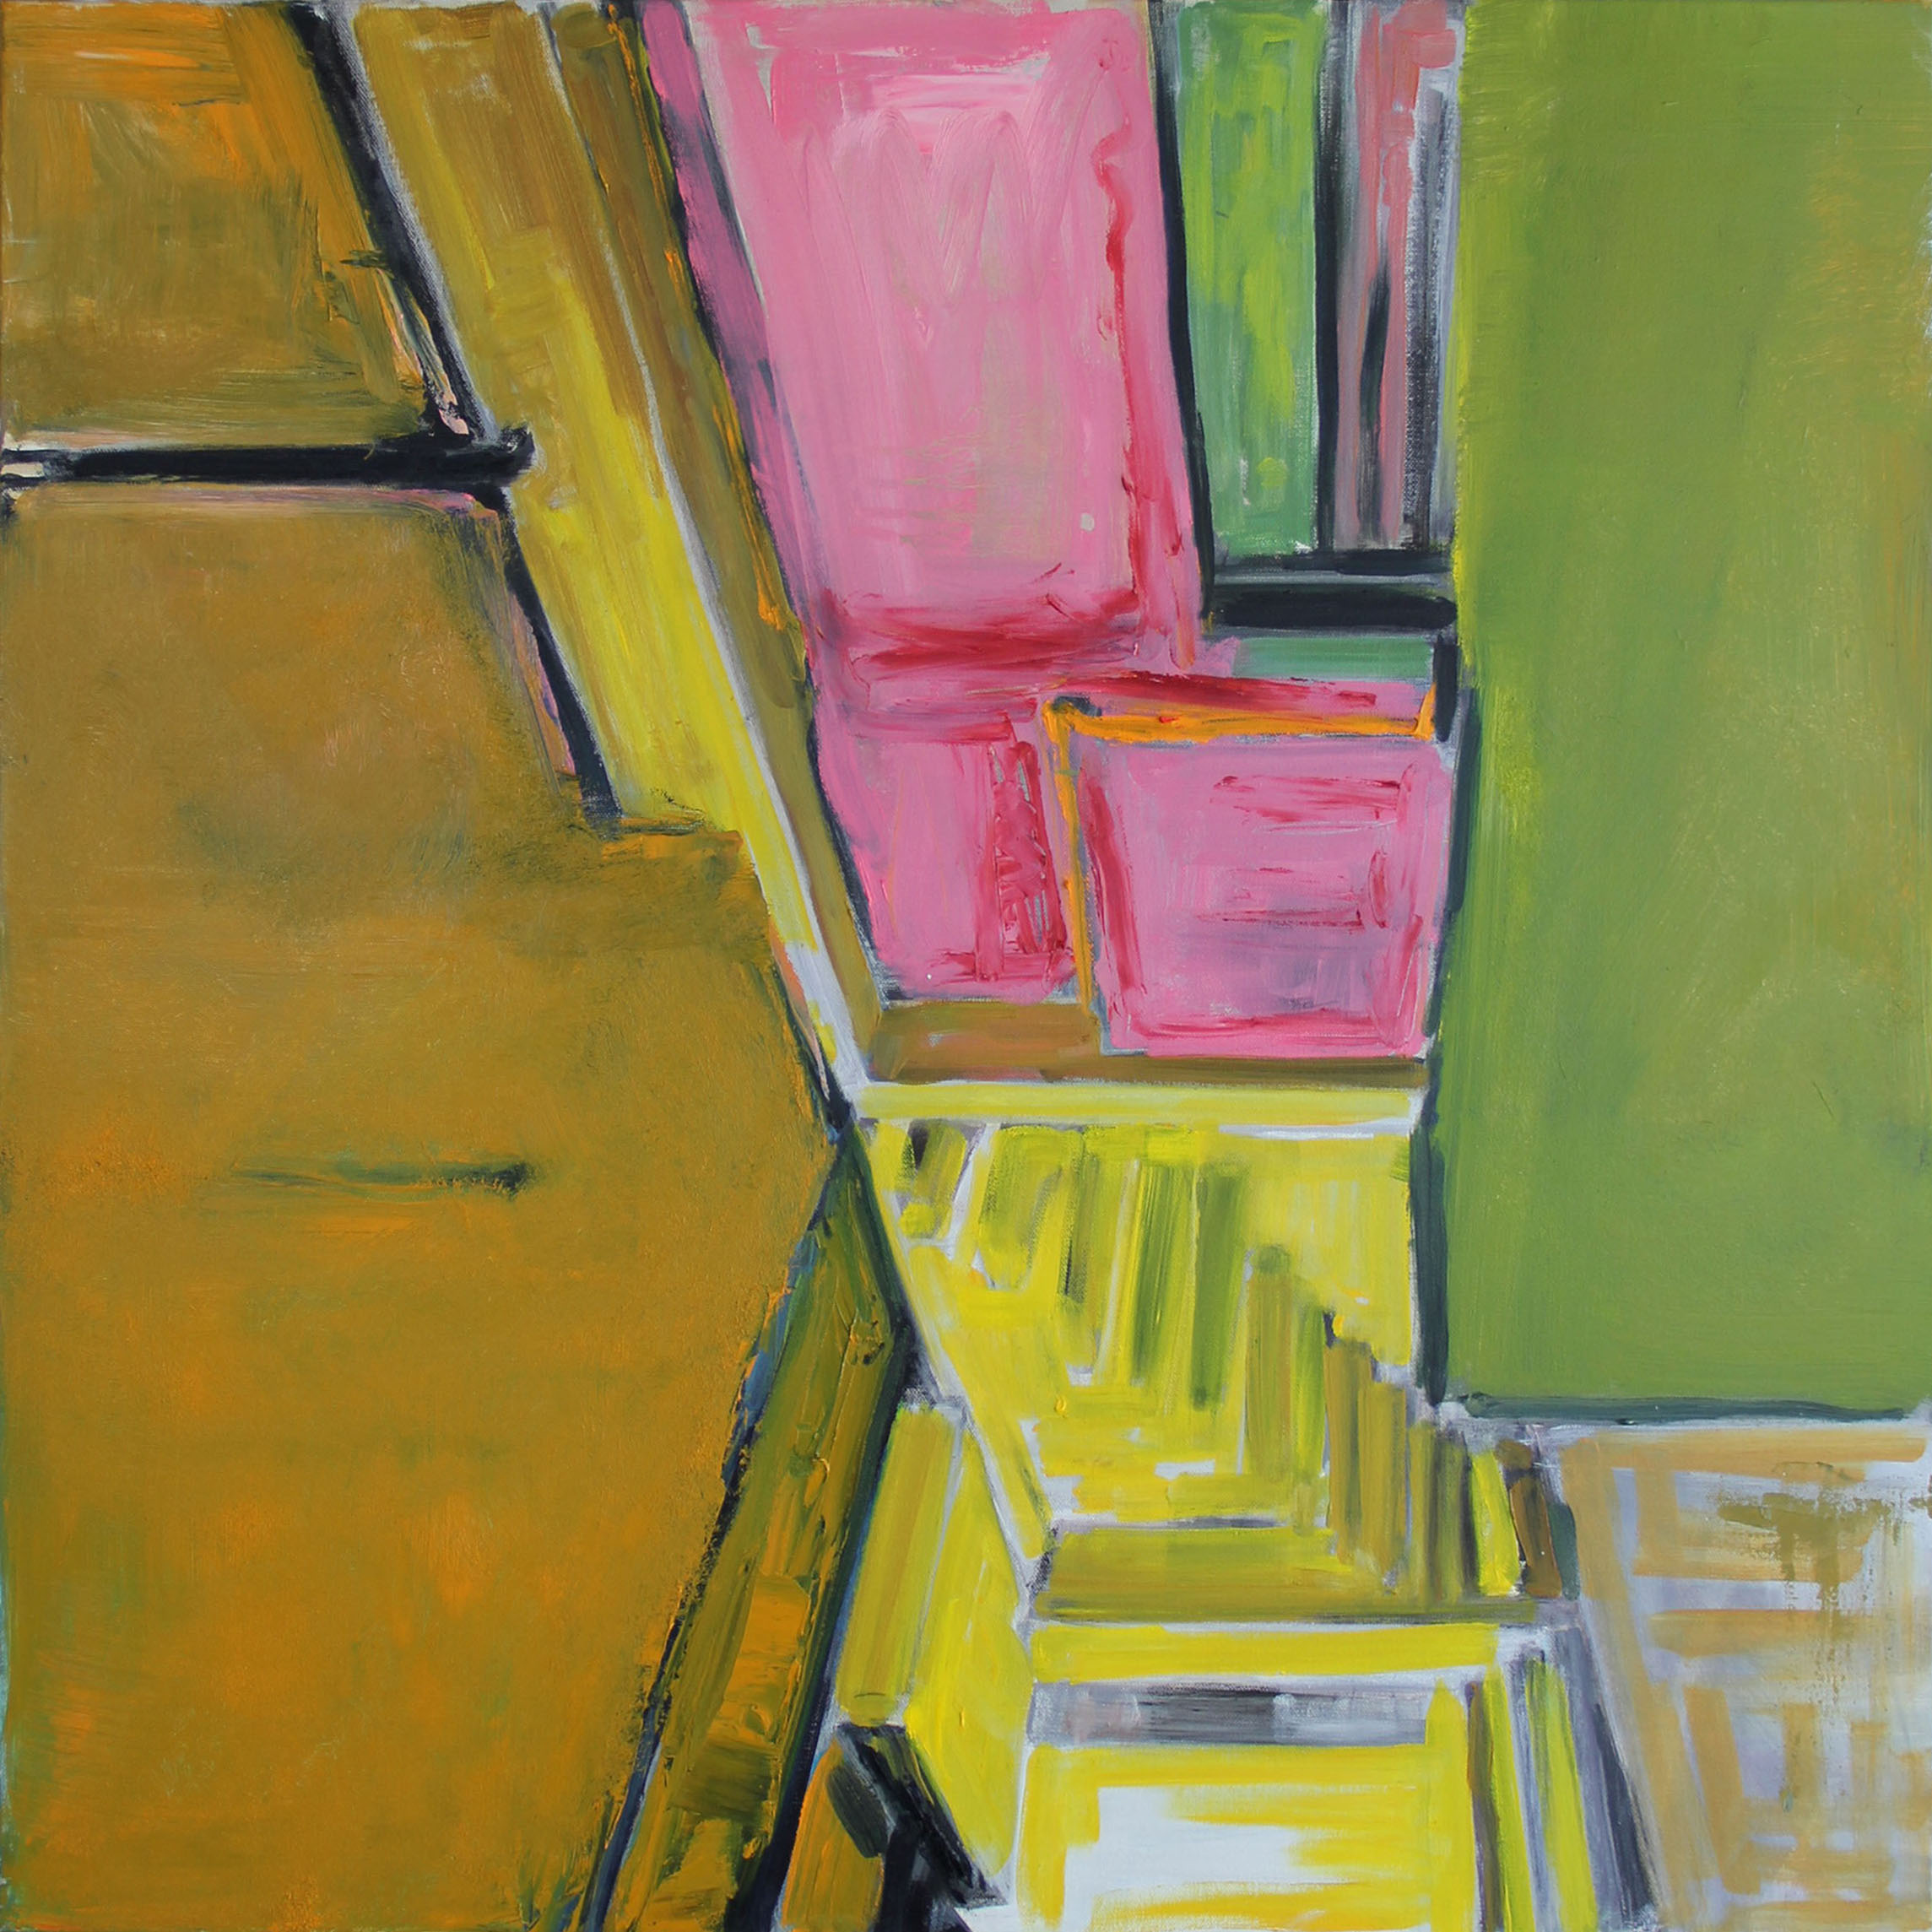 "Pink and Green 30"" x 30"". Oil on Canvas"